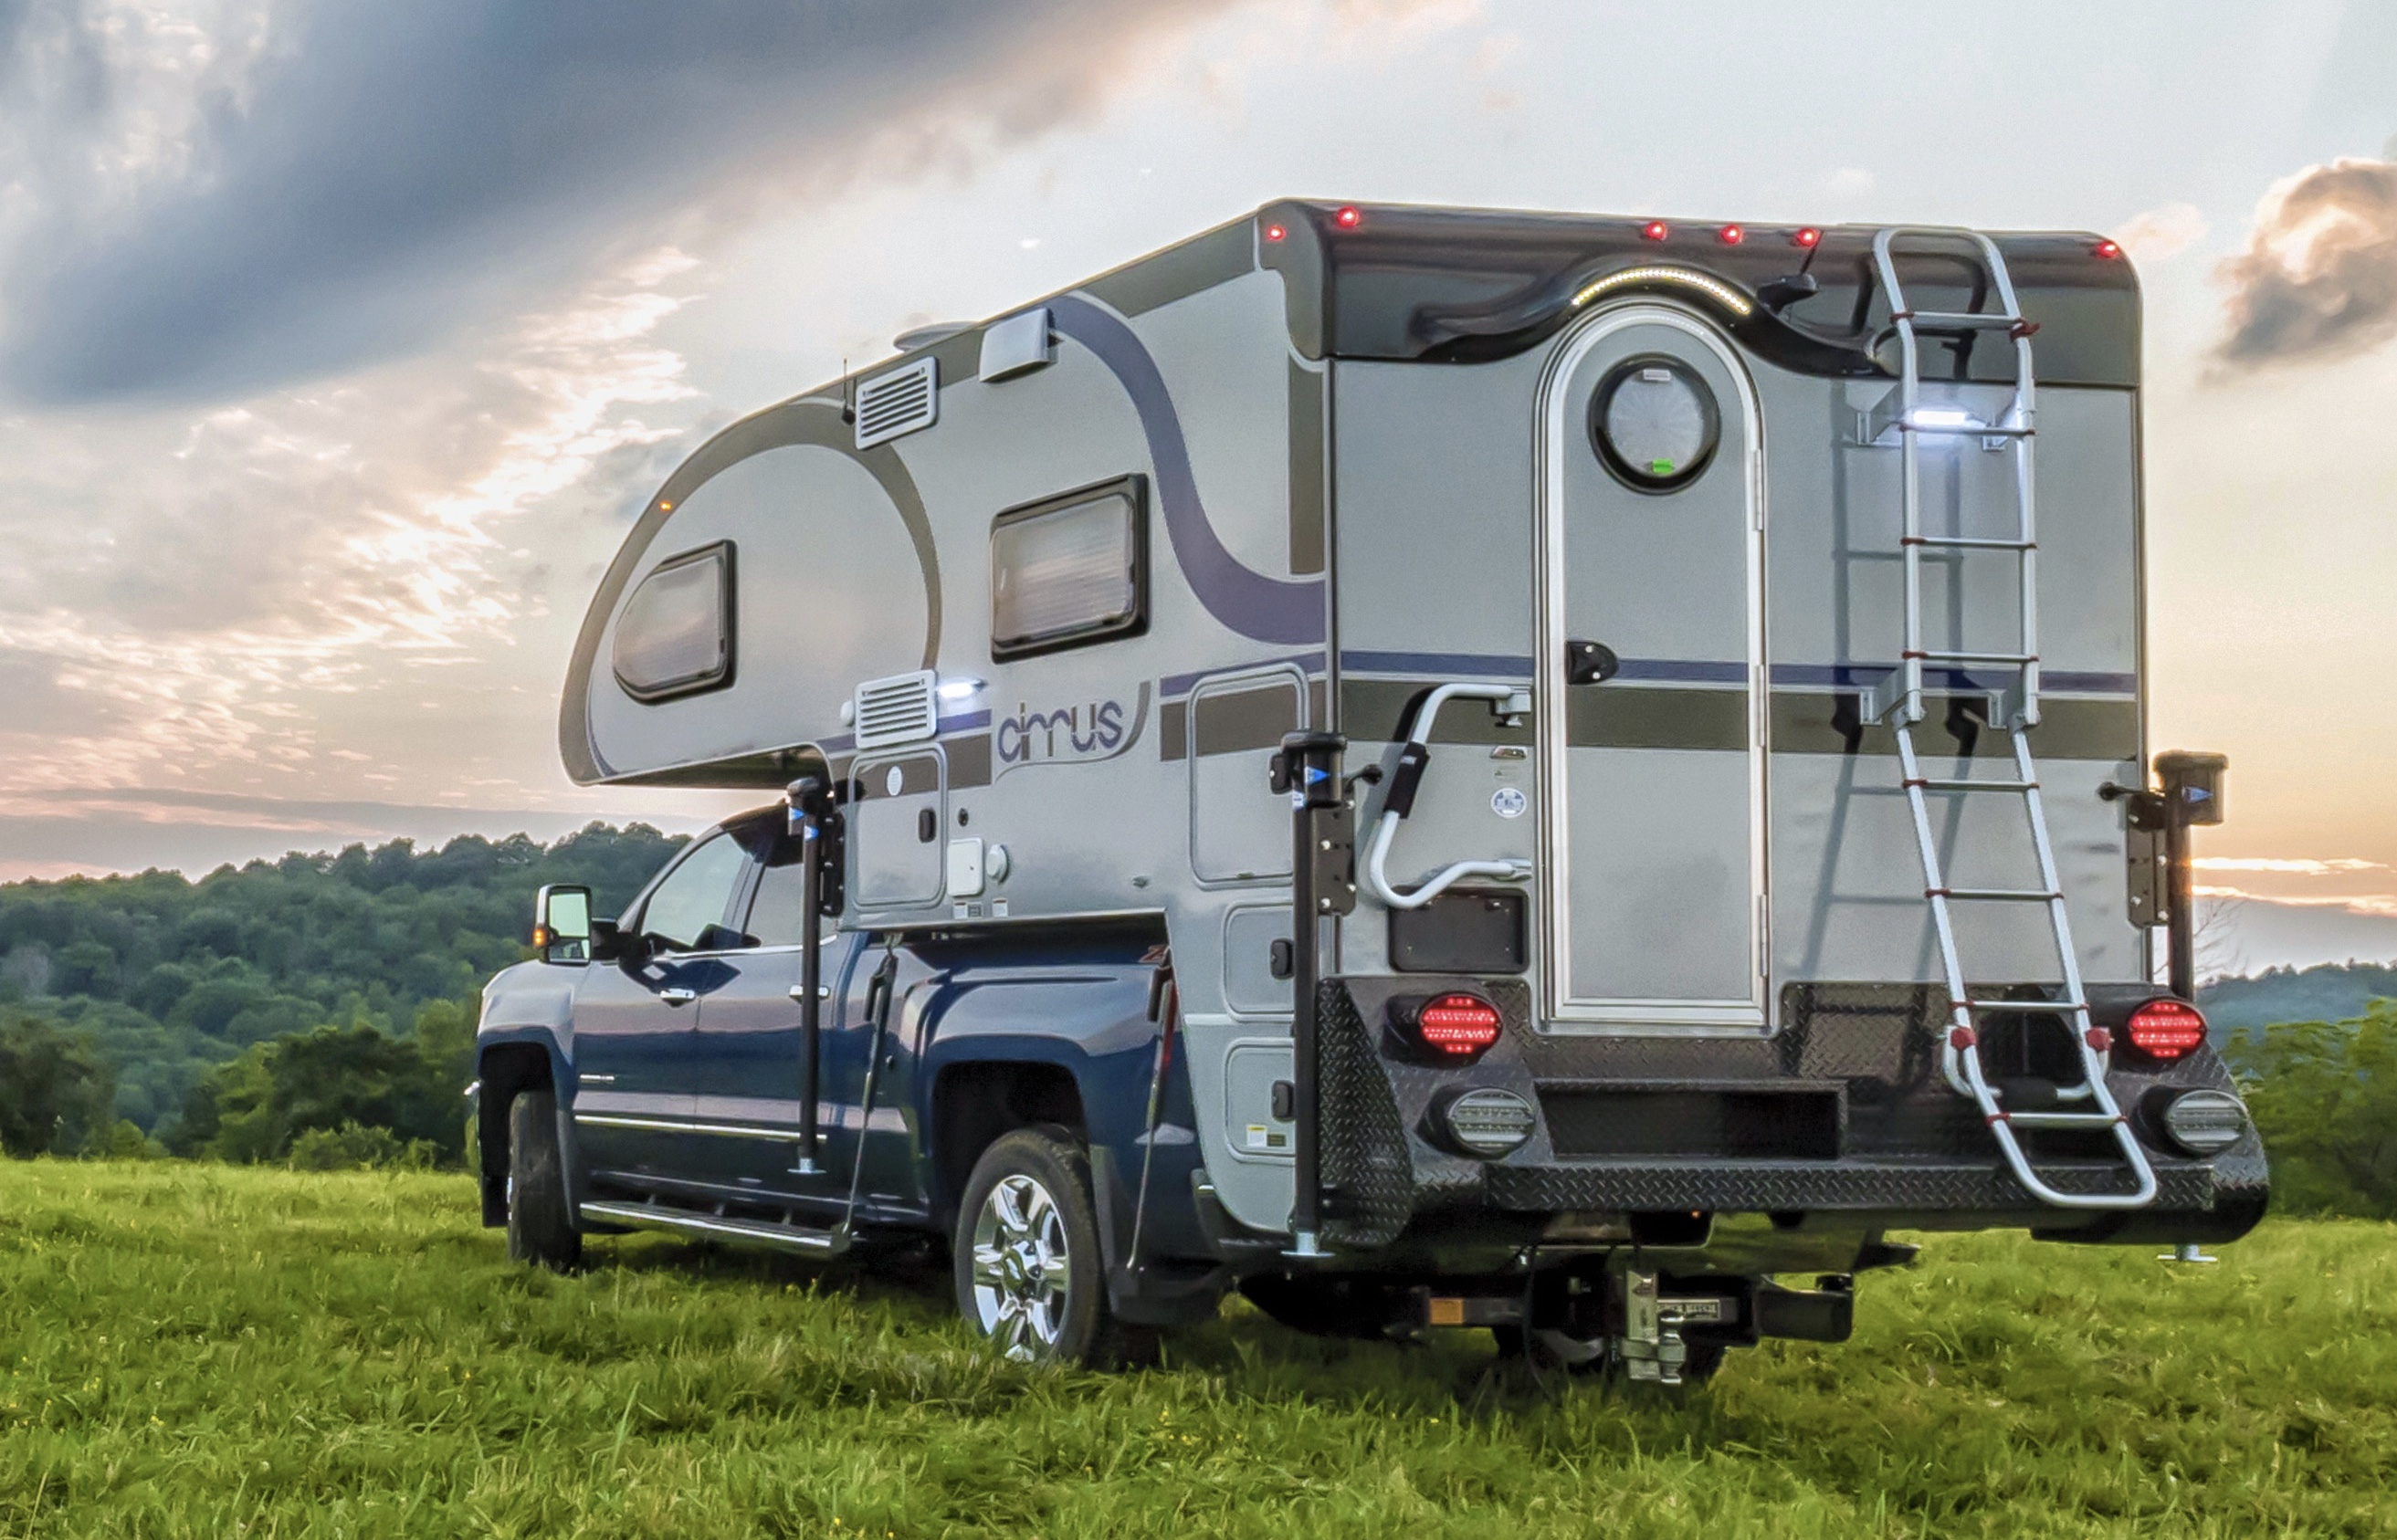 Top 8 Long Bed Truck Campers For One Ton Trucks Truck Camper Adventure